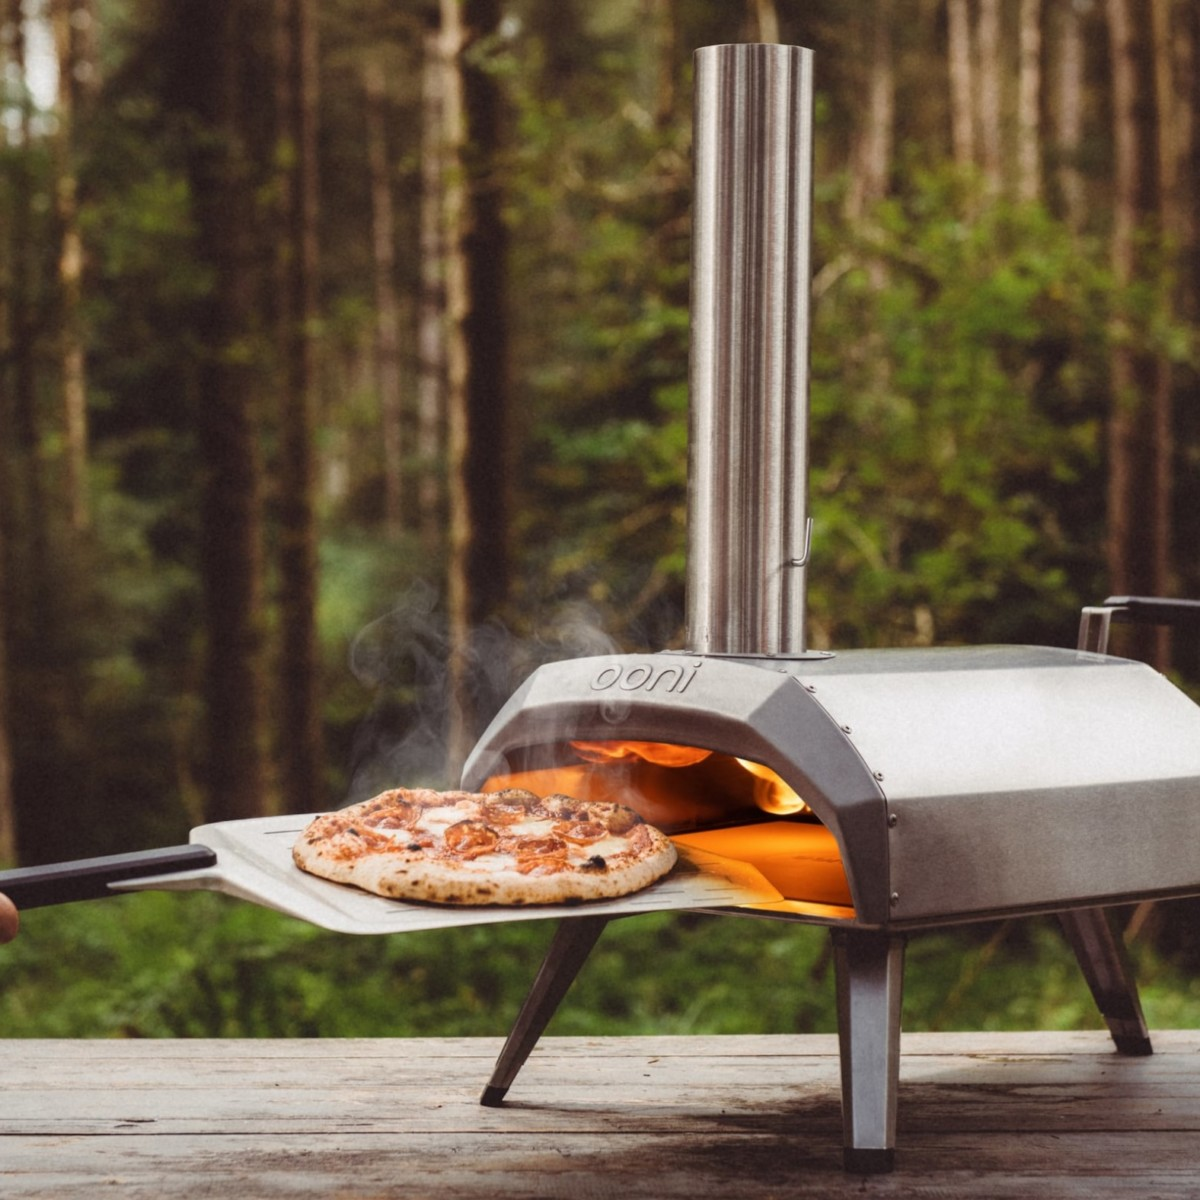 Ooni Karu Wood-Fired Portable Pizza Oven gives you the most delicious pizza anywhere, anytime